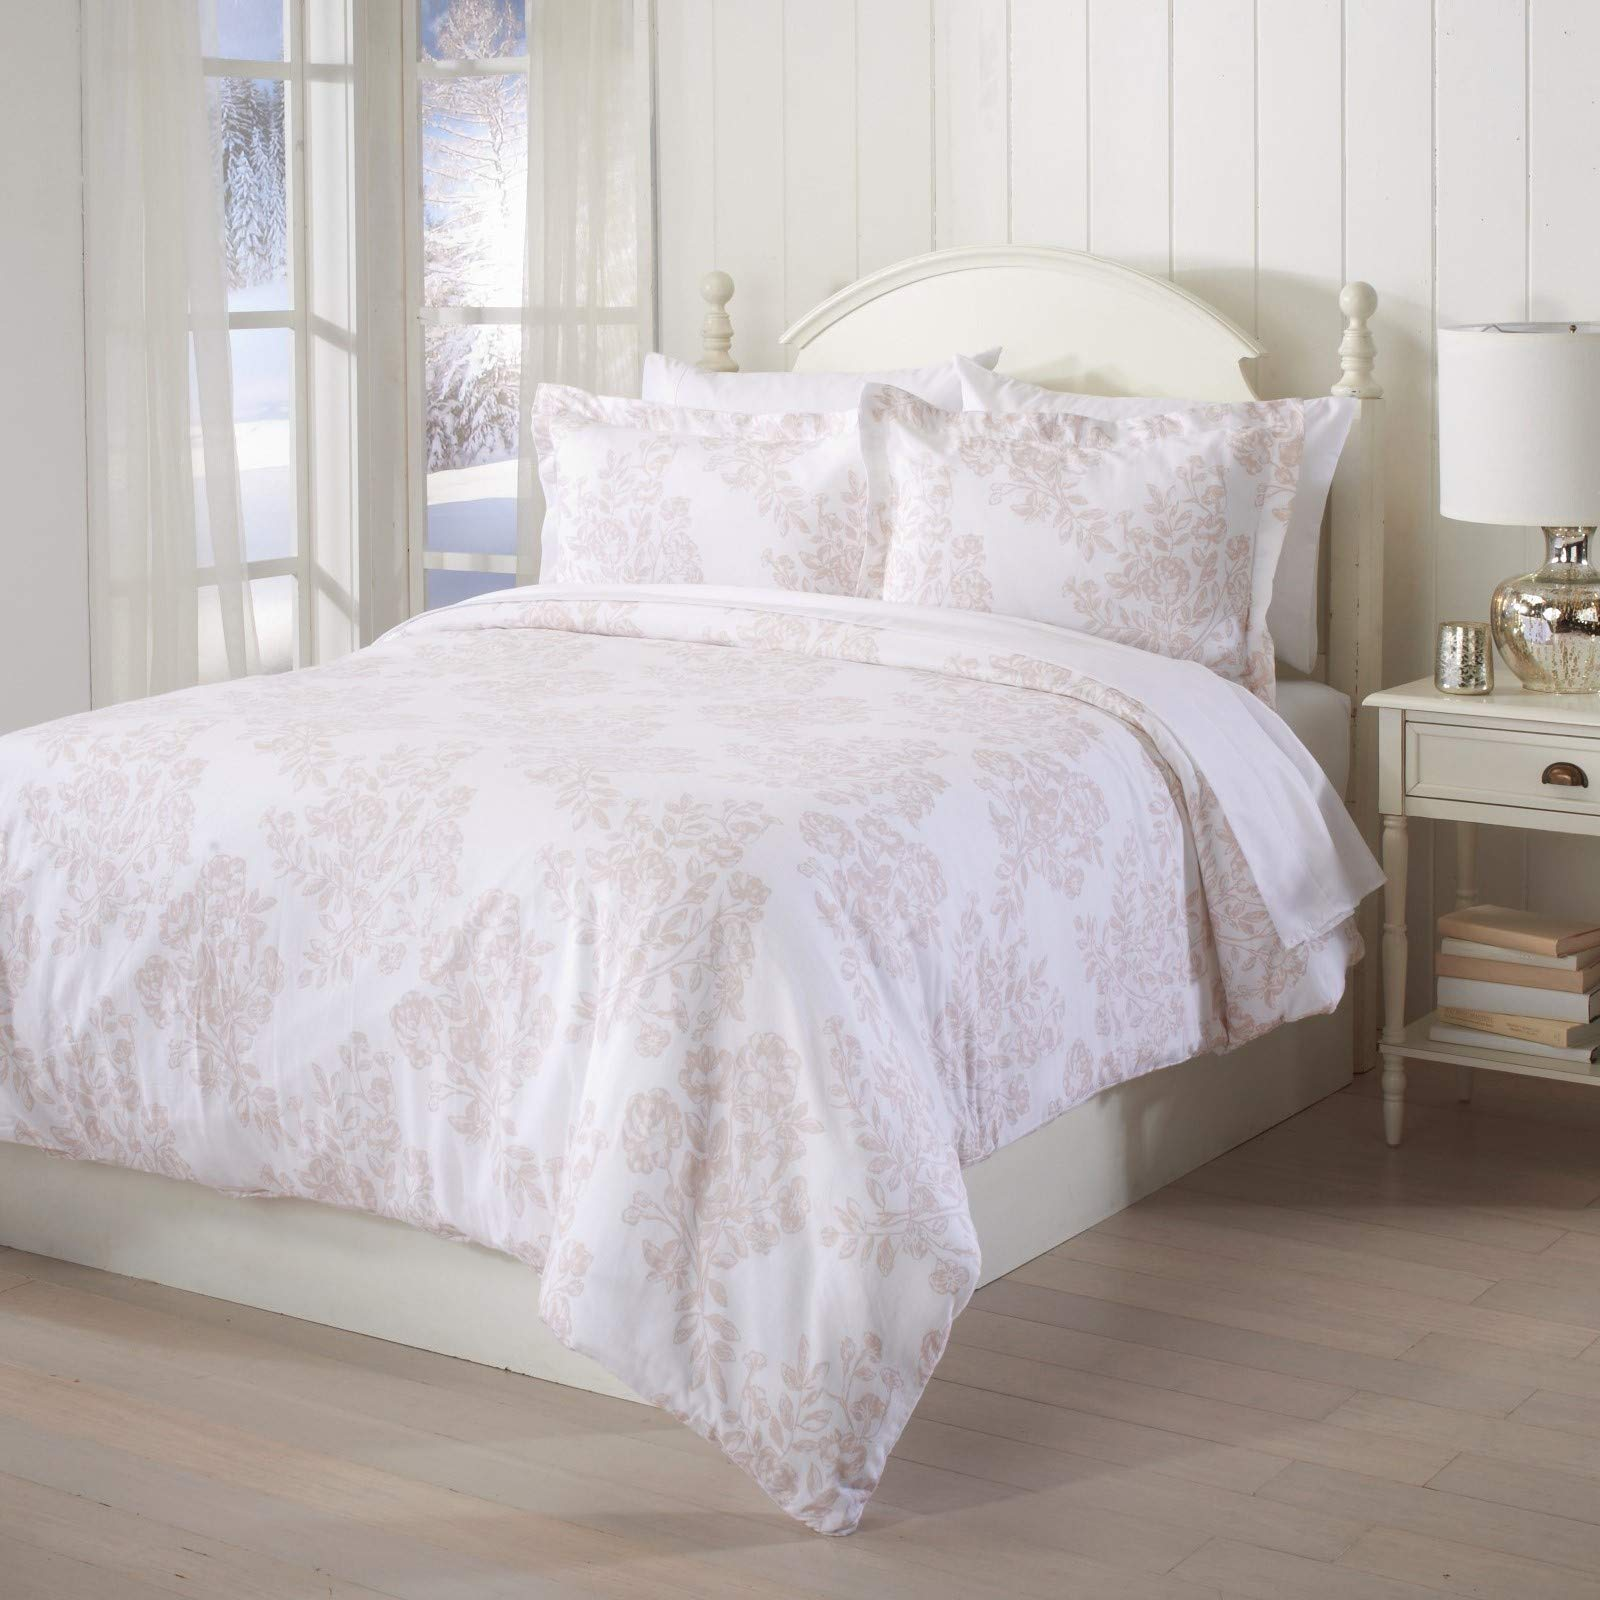 Great Bay Home Extra Soft Printed Flannel Duvet Cover with Button Closure. 100% Turkish Cotton 3-Piece Set with Pillow Shams. Belle Collection (Full/Queen, Toile - Blush Pink)